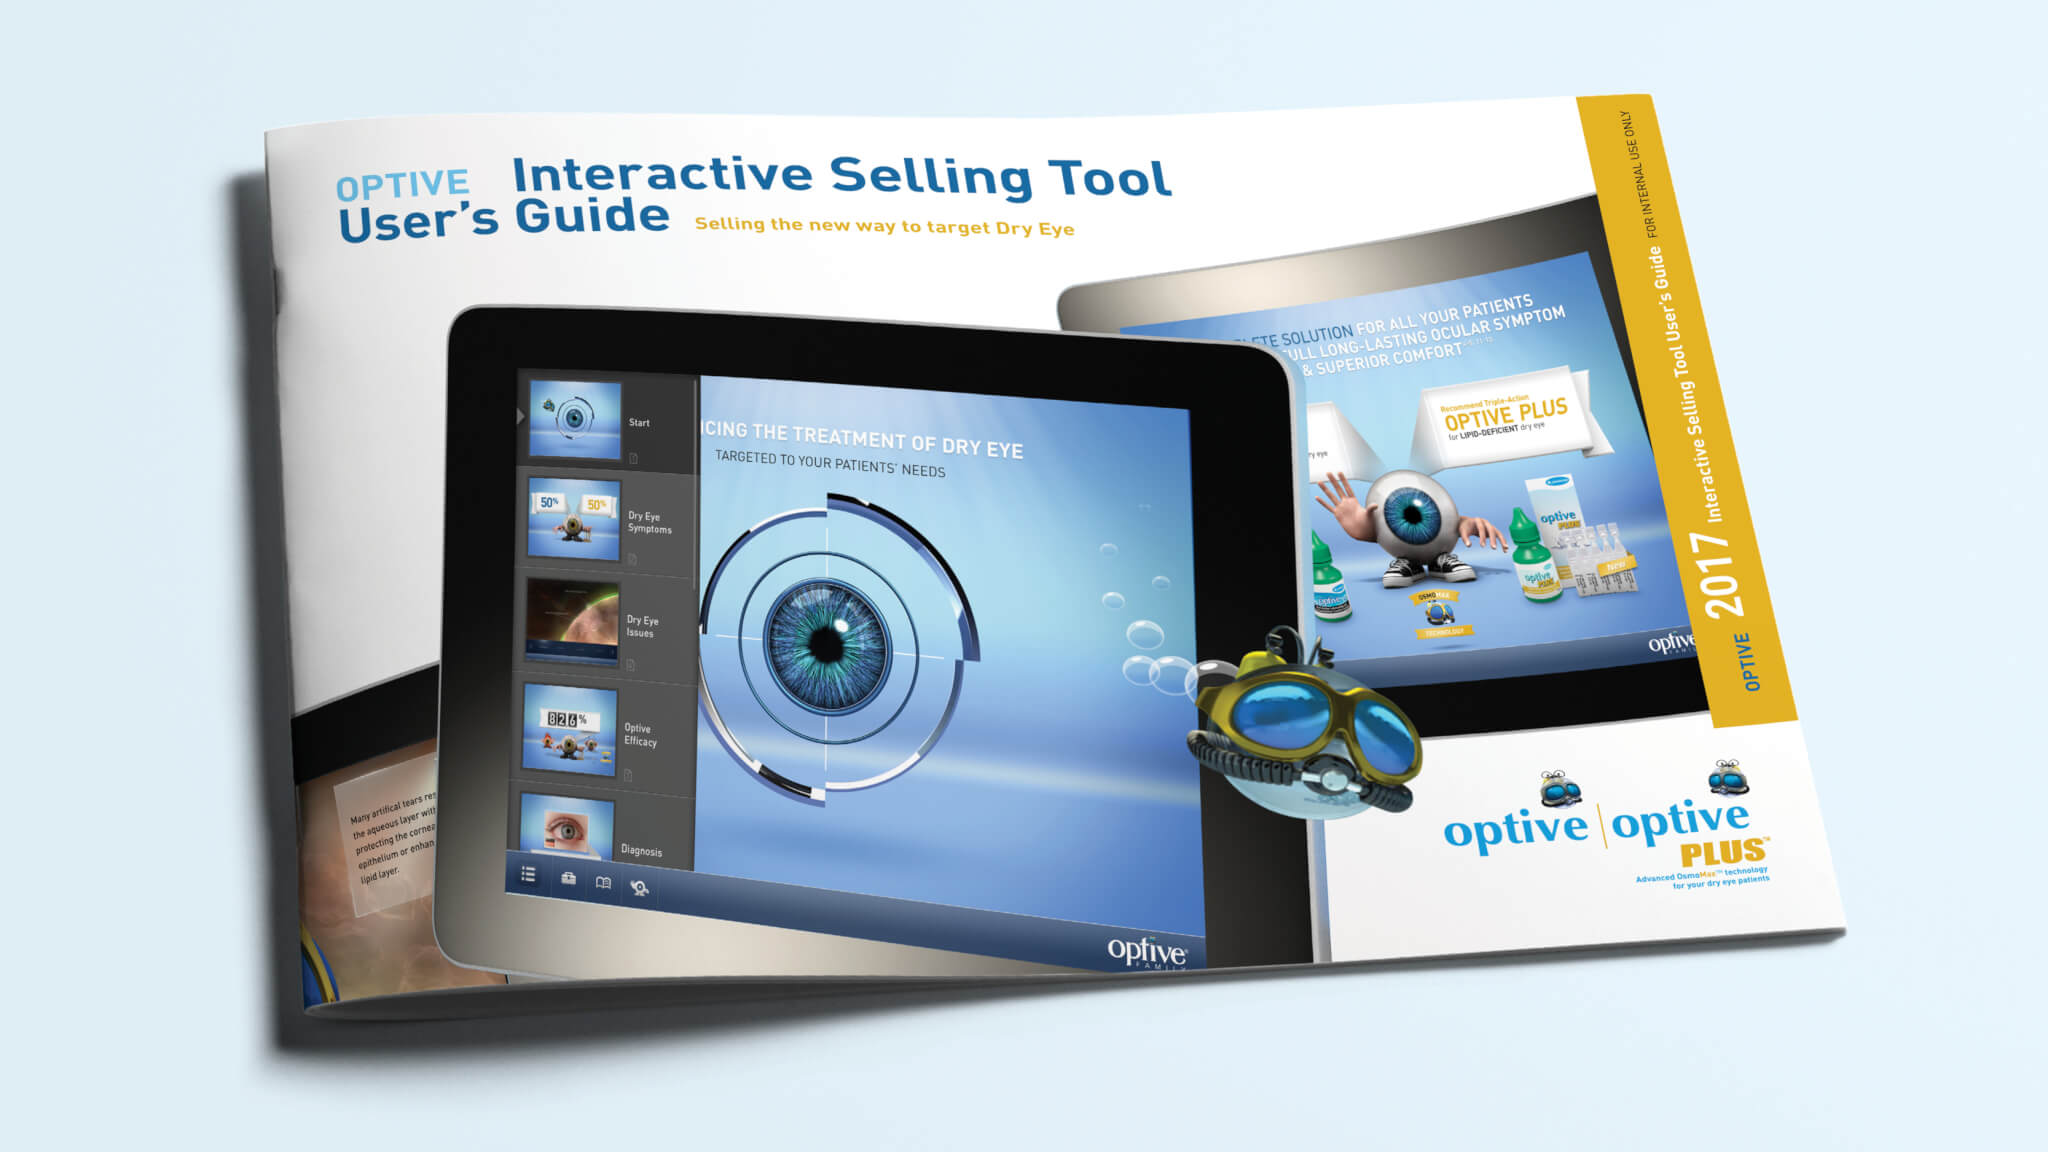 Optive Interactive Selling Tool User's Guide